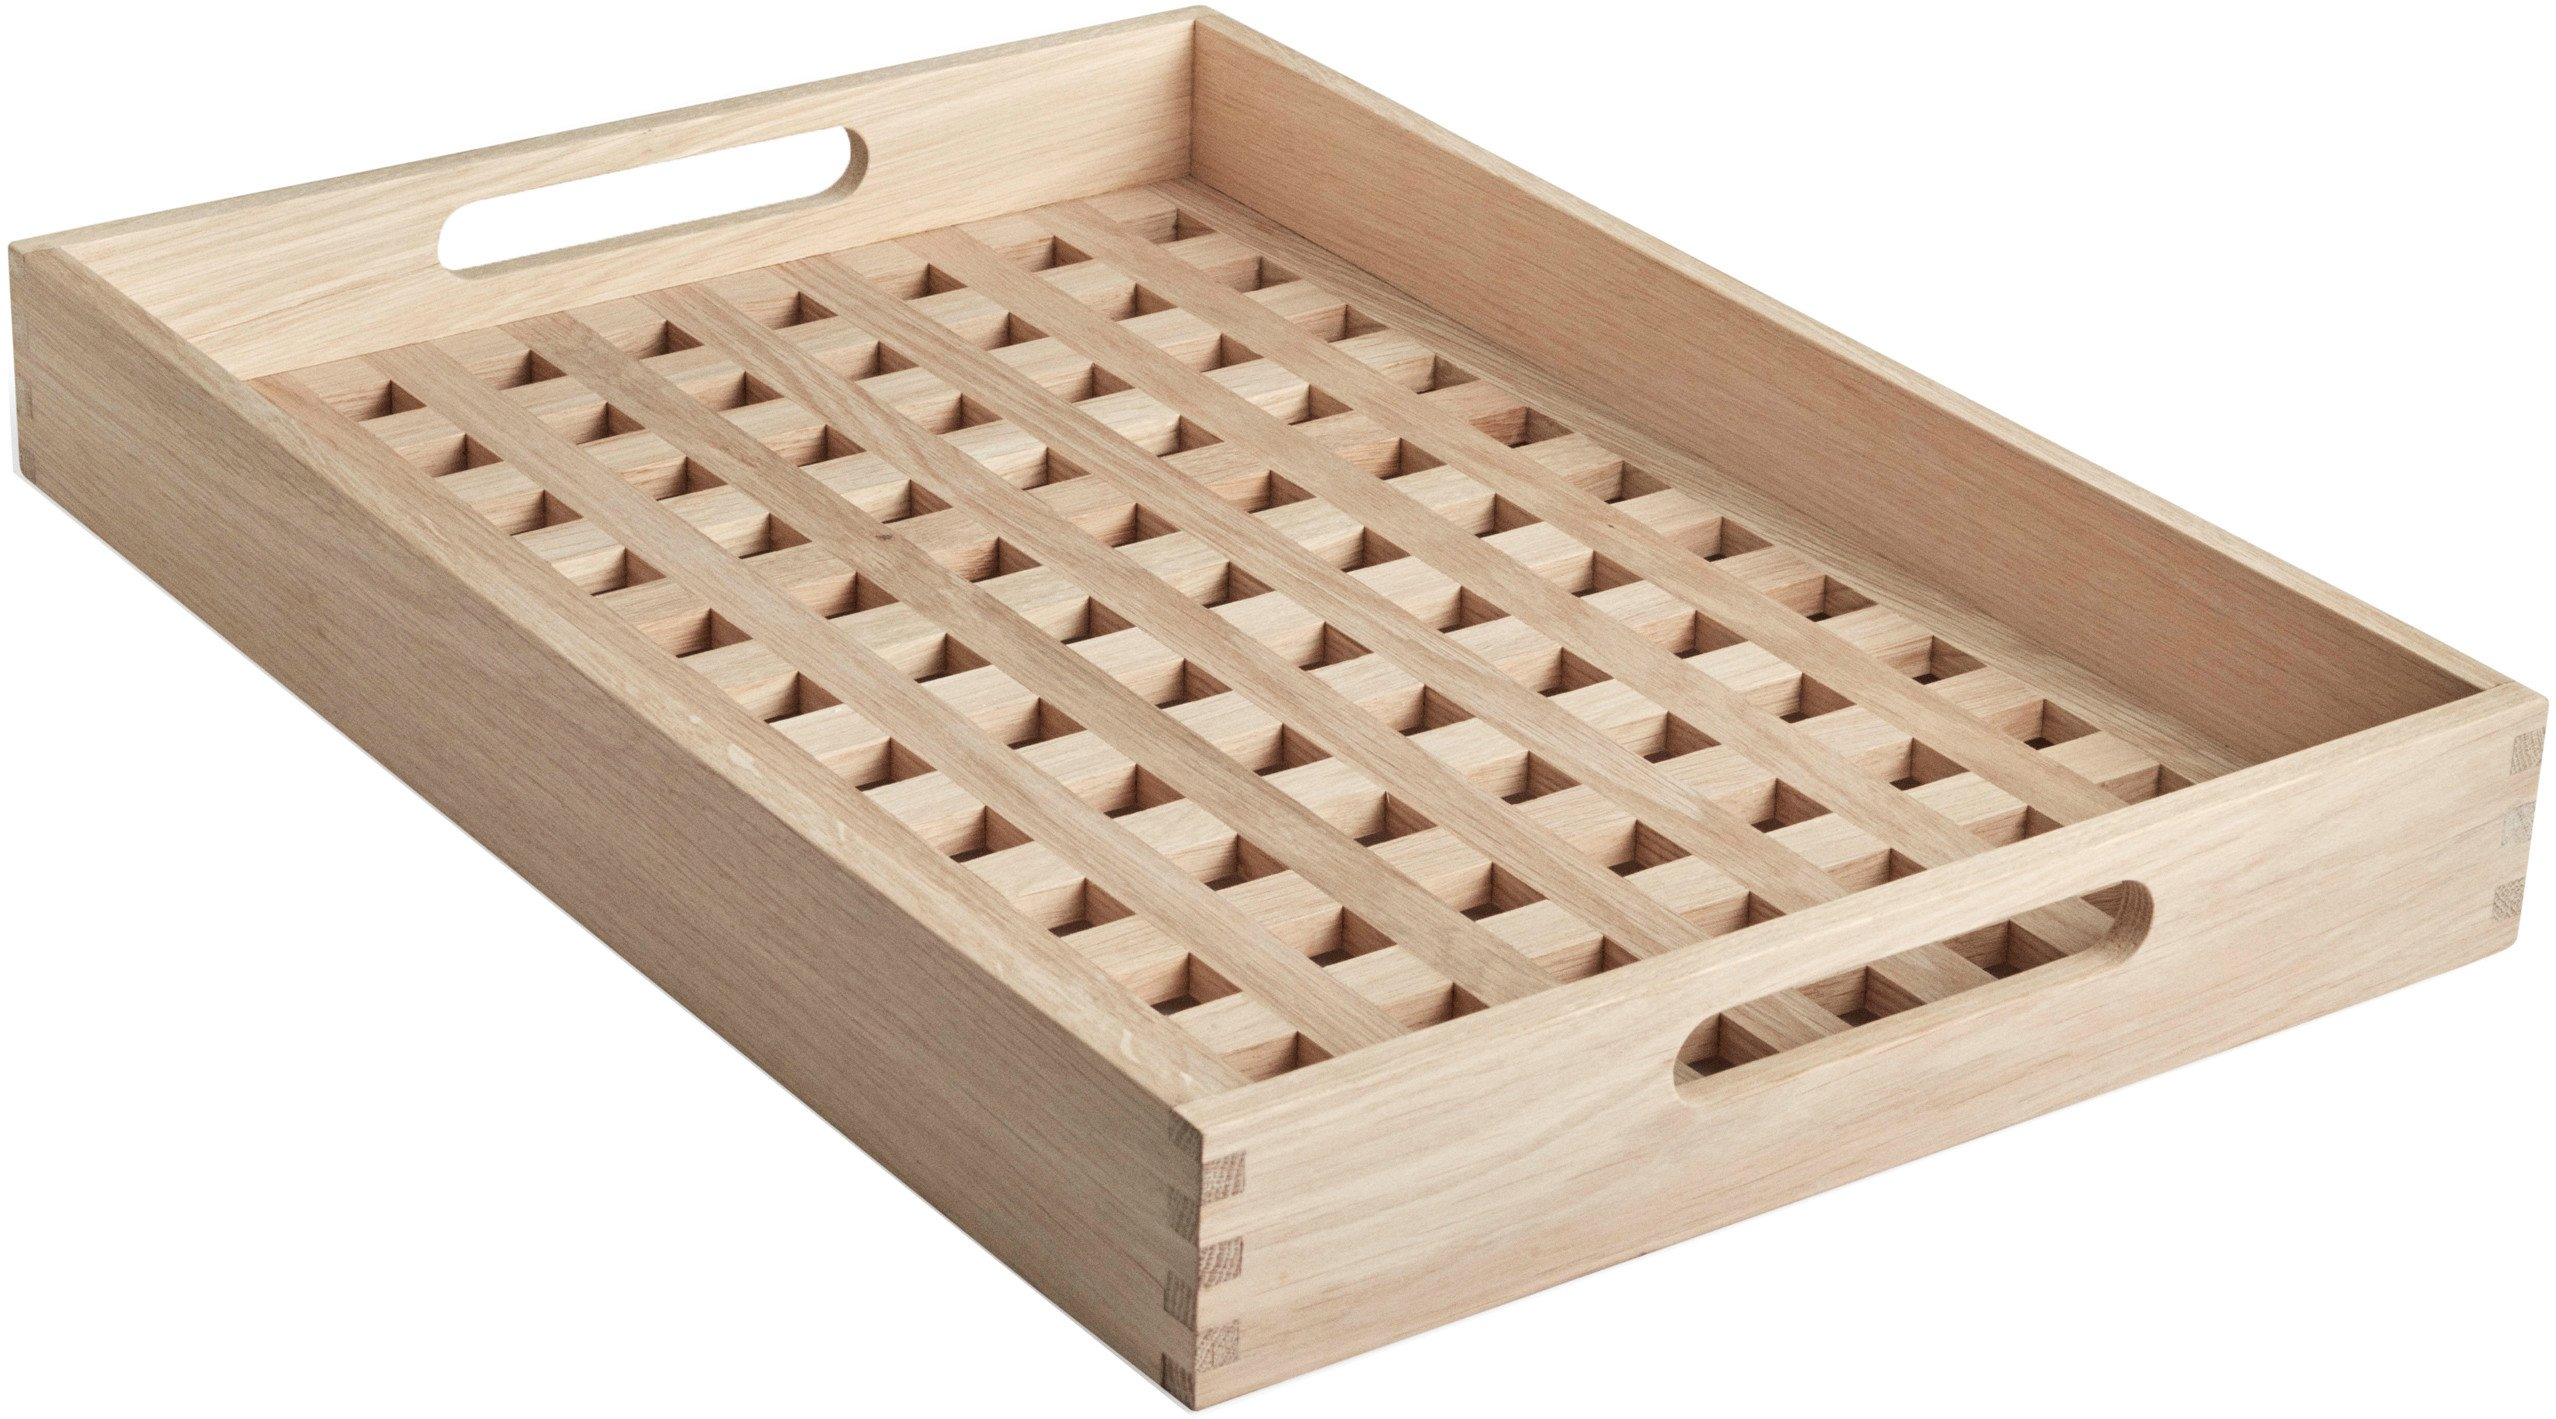 Fionia Tray 52 cm x 36 cm Oak by Skagerak design for Skagerak